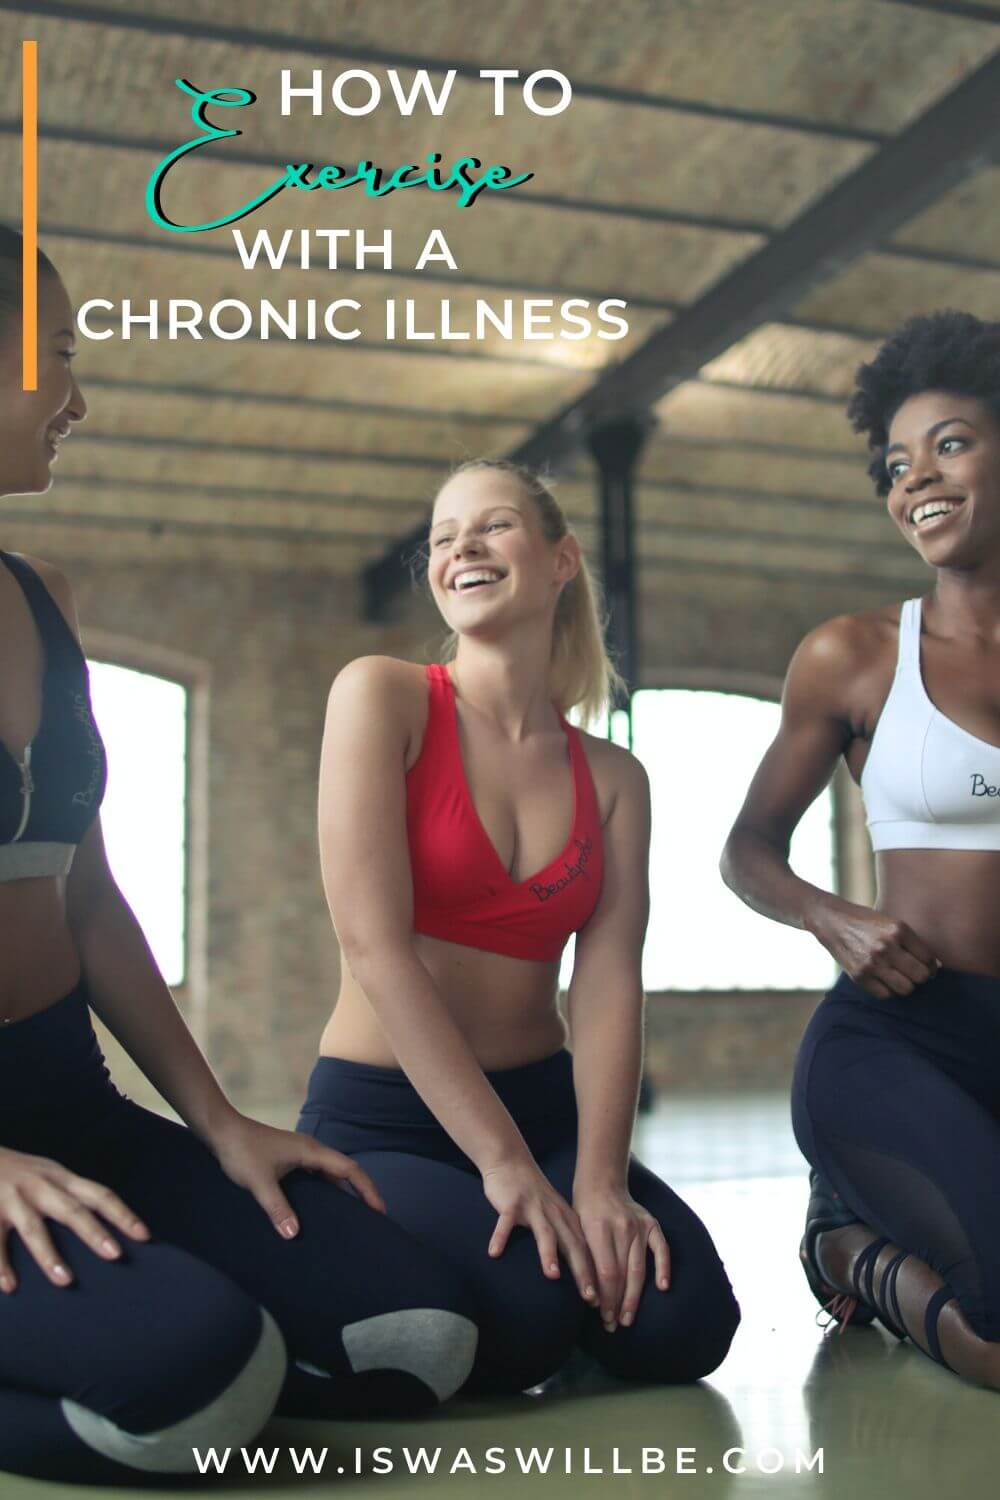 how to exercise with chronic illness